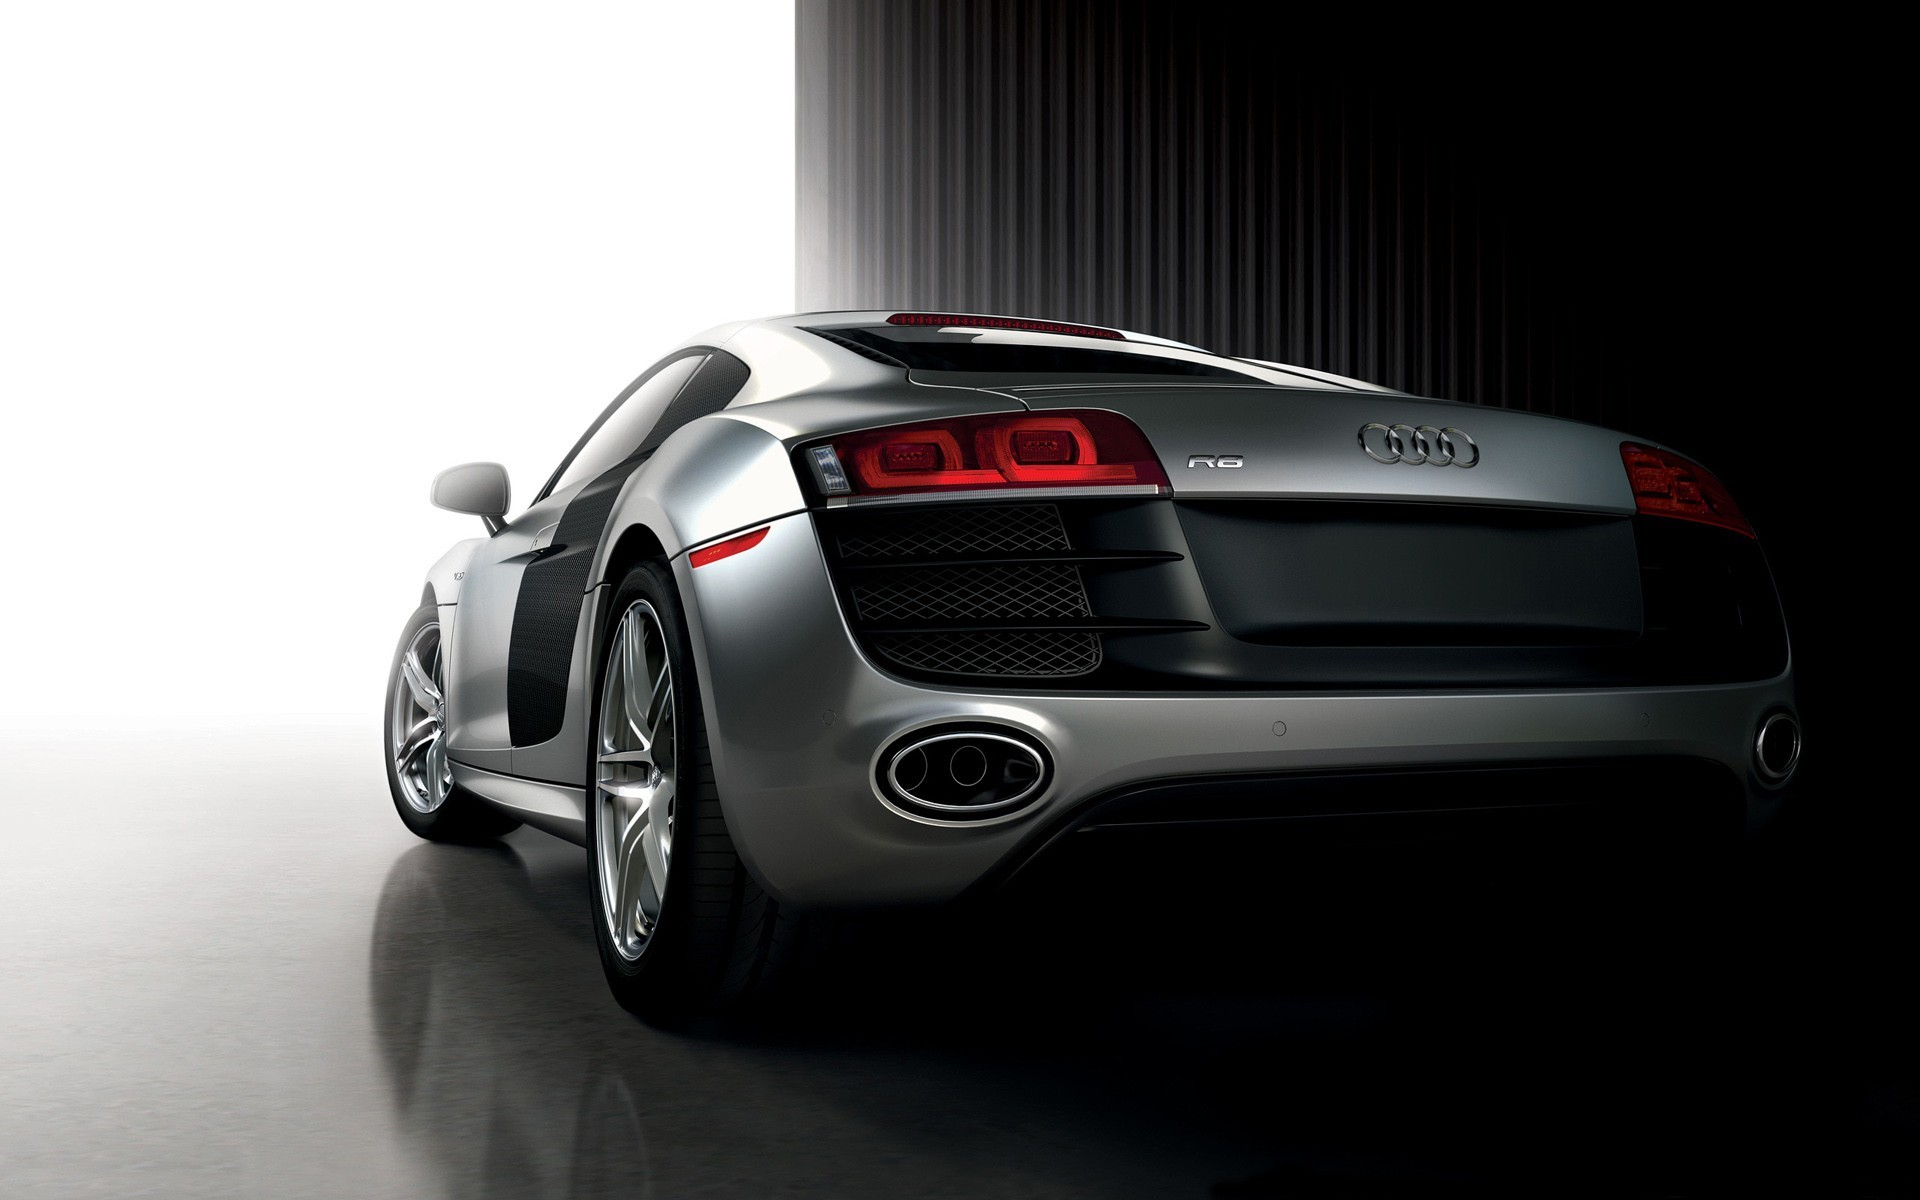 cars Supercars audi r8 HD Wallpaper